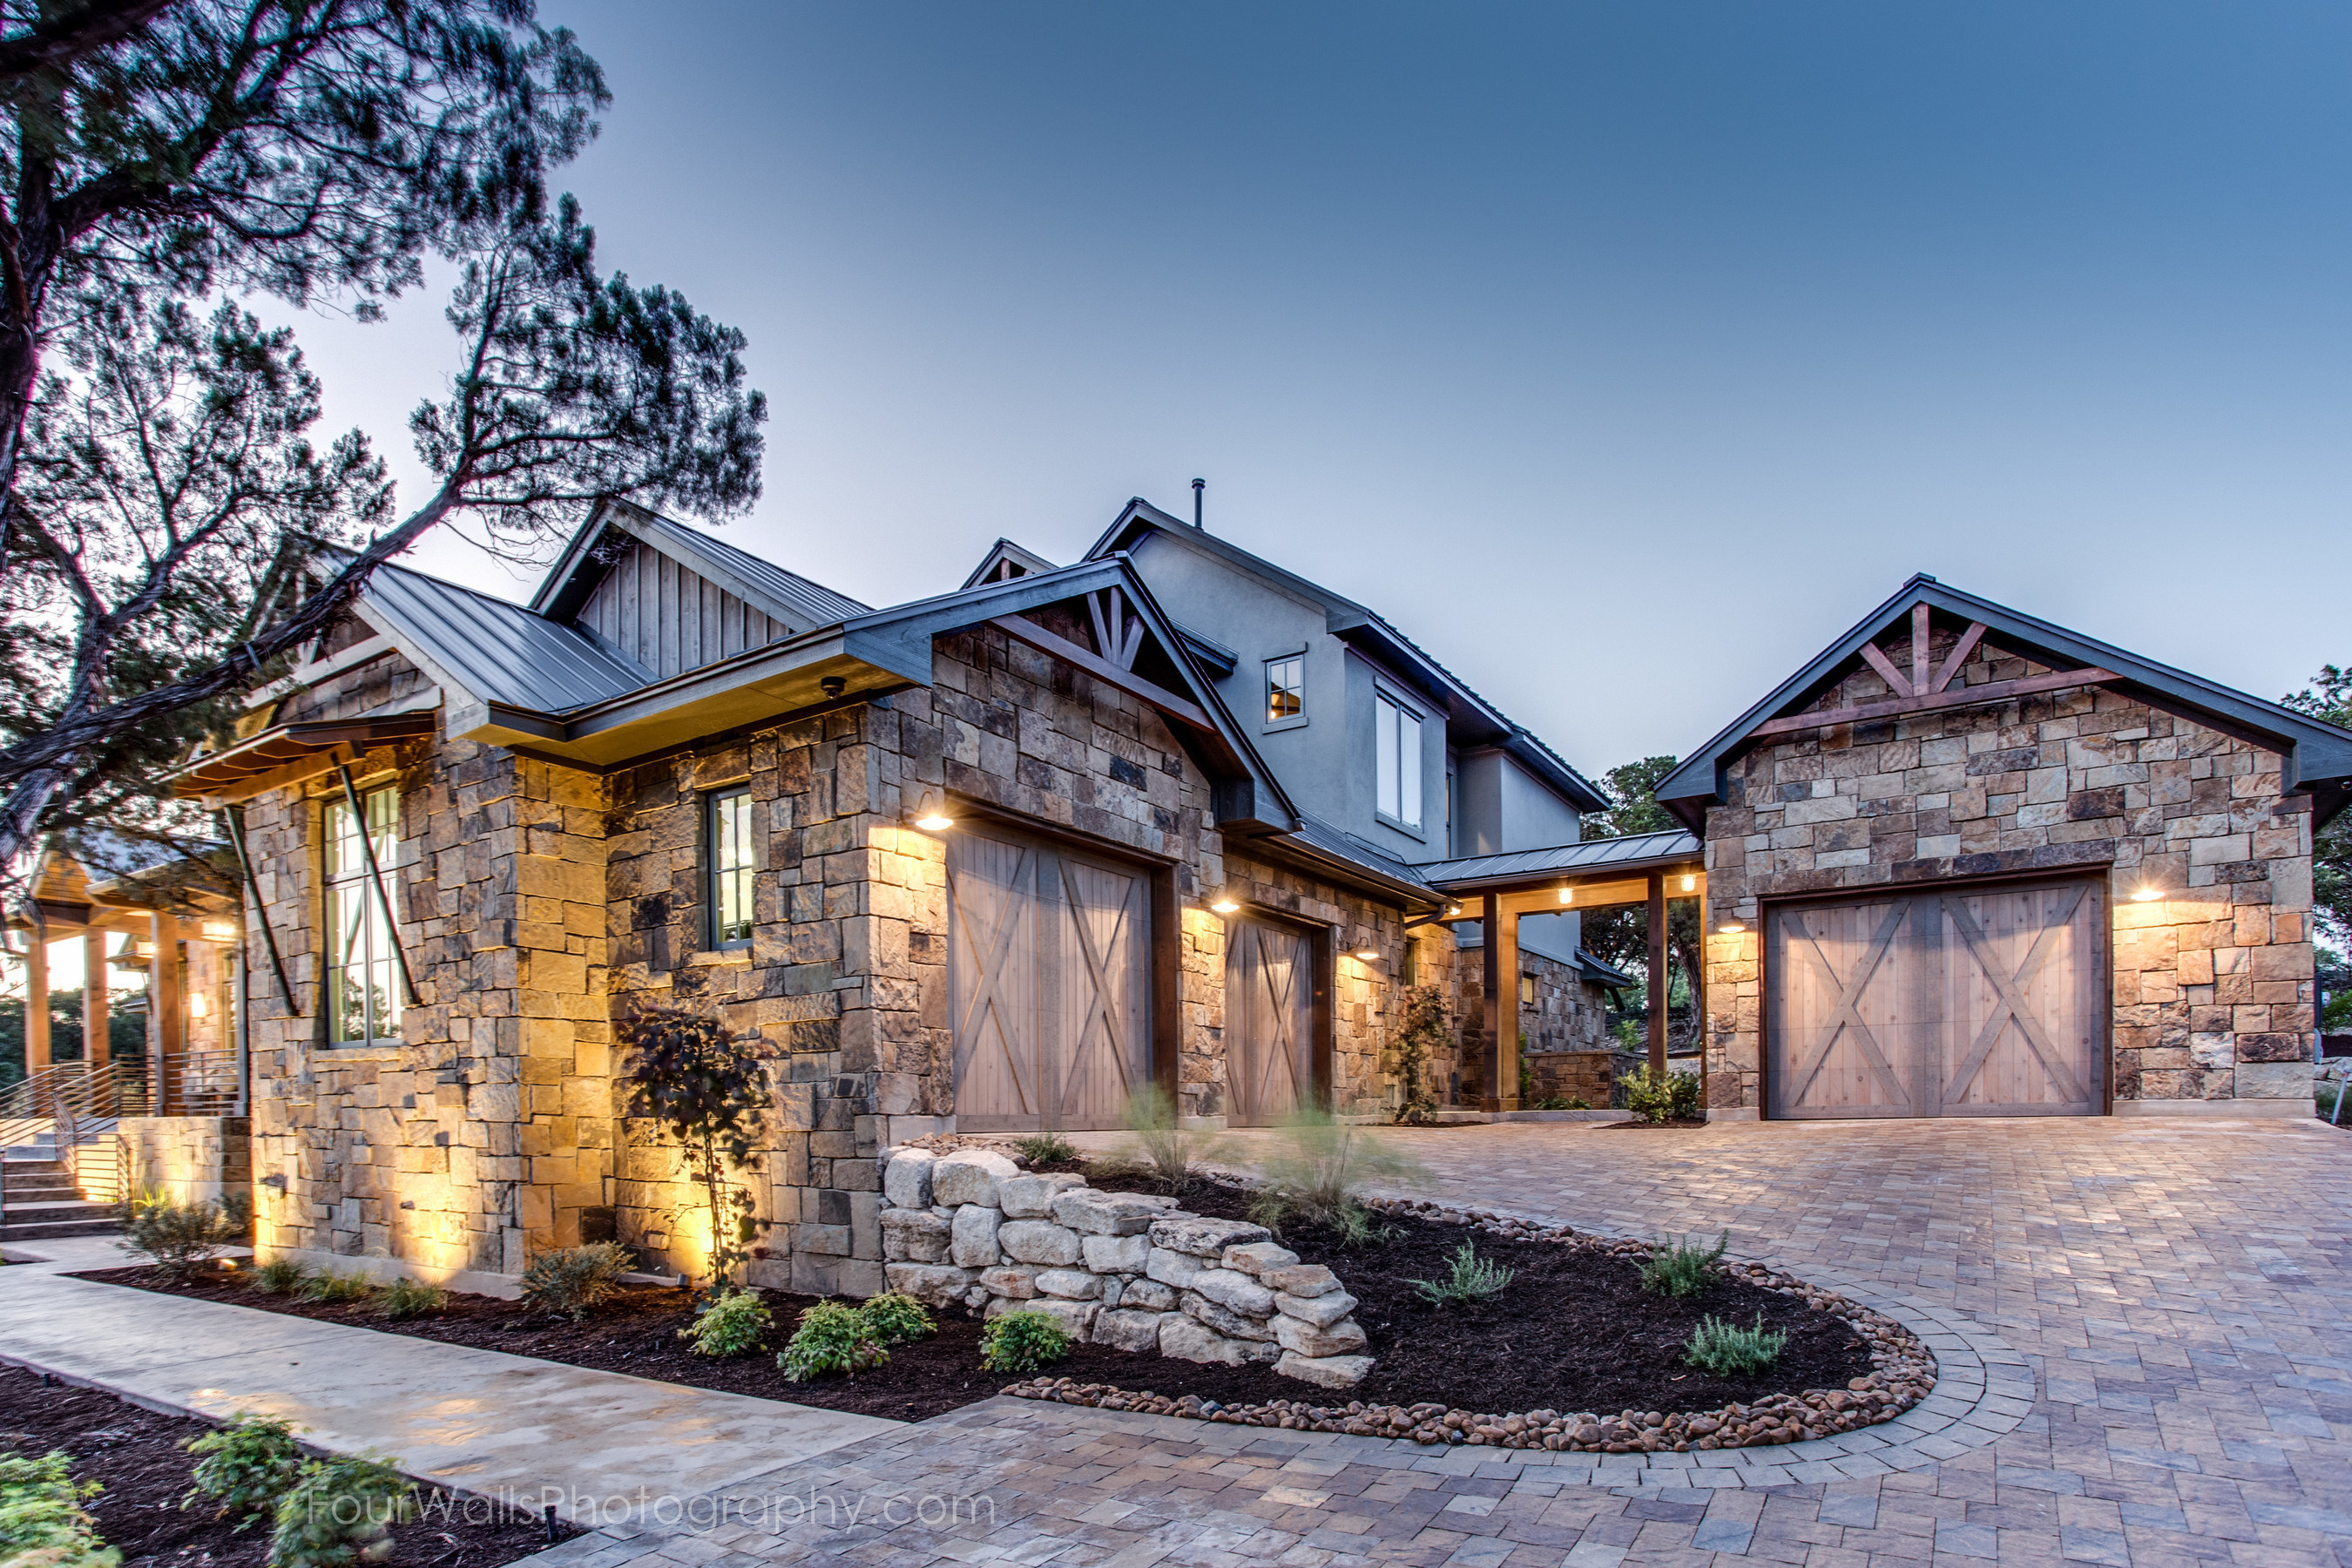 Builder Earns 10 of 15 Awards at Austin Tour of Homes